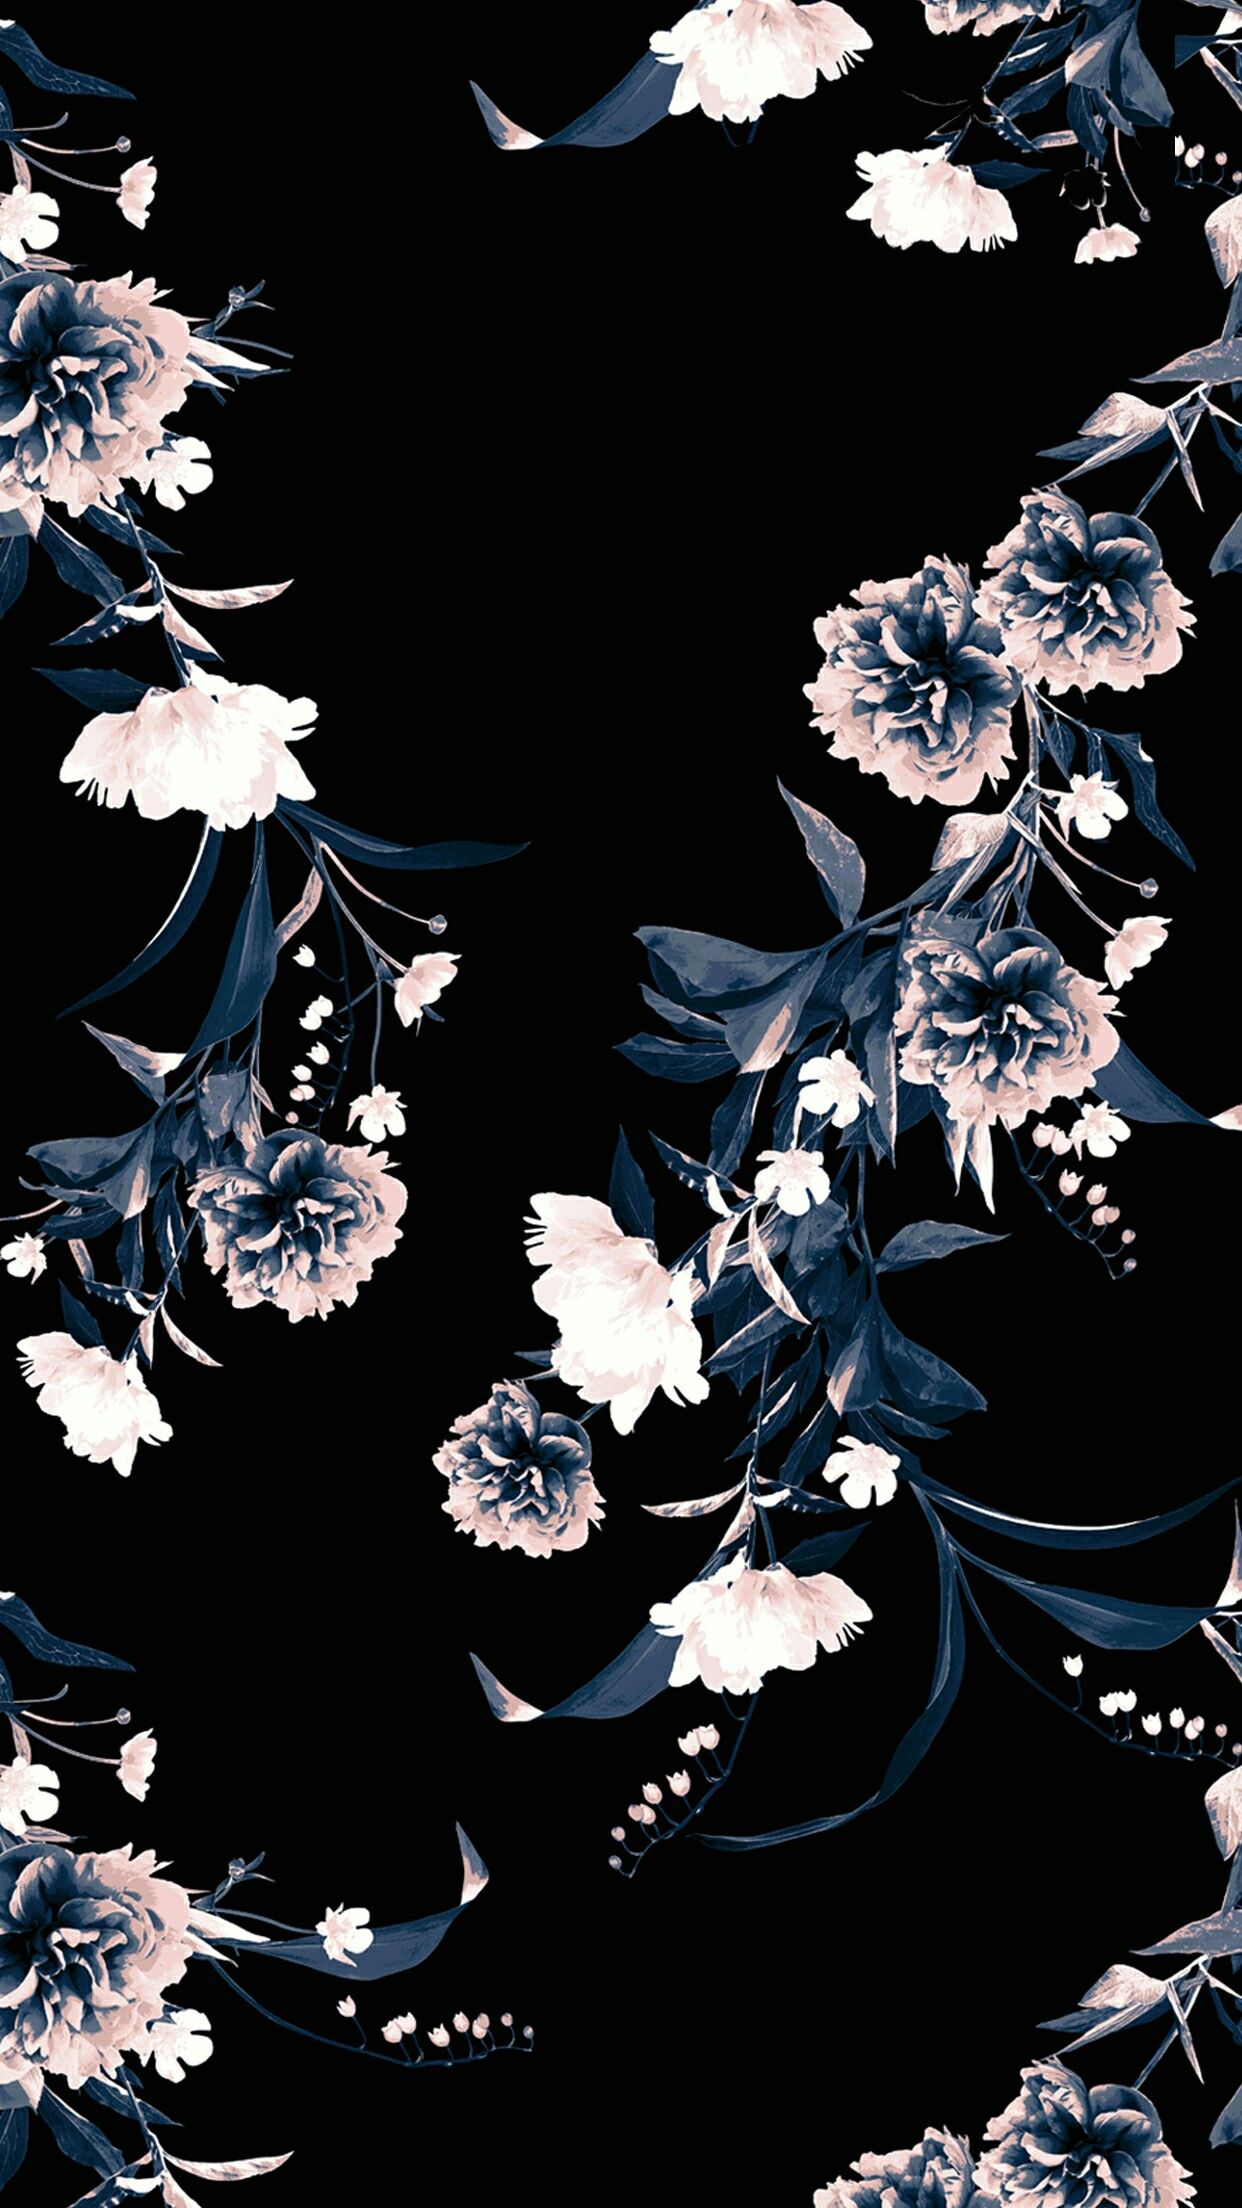 Black Floral Phone Backgrounds Pinterest Iphone Wallpaper